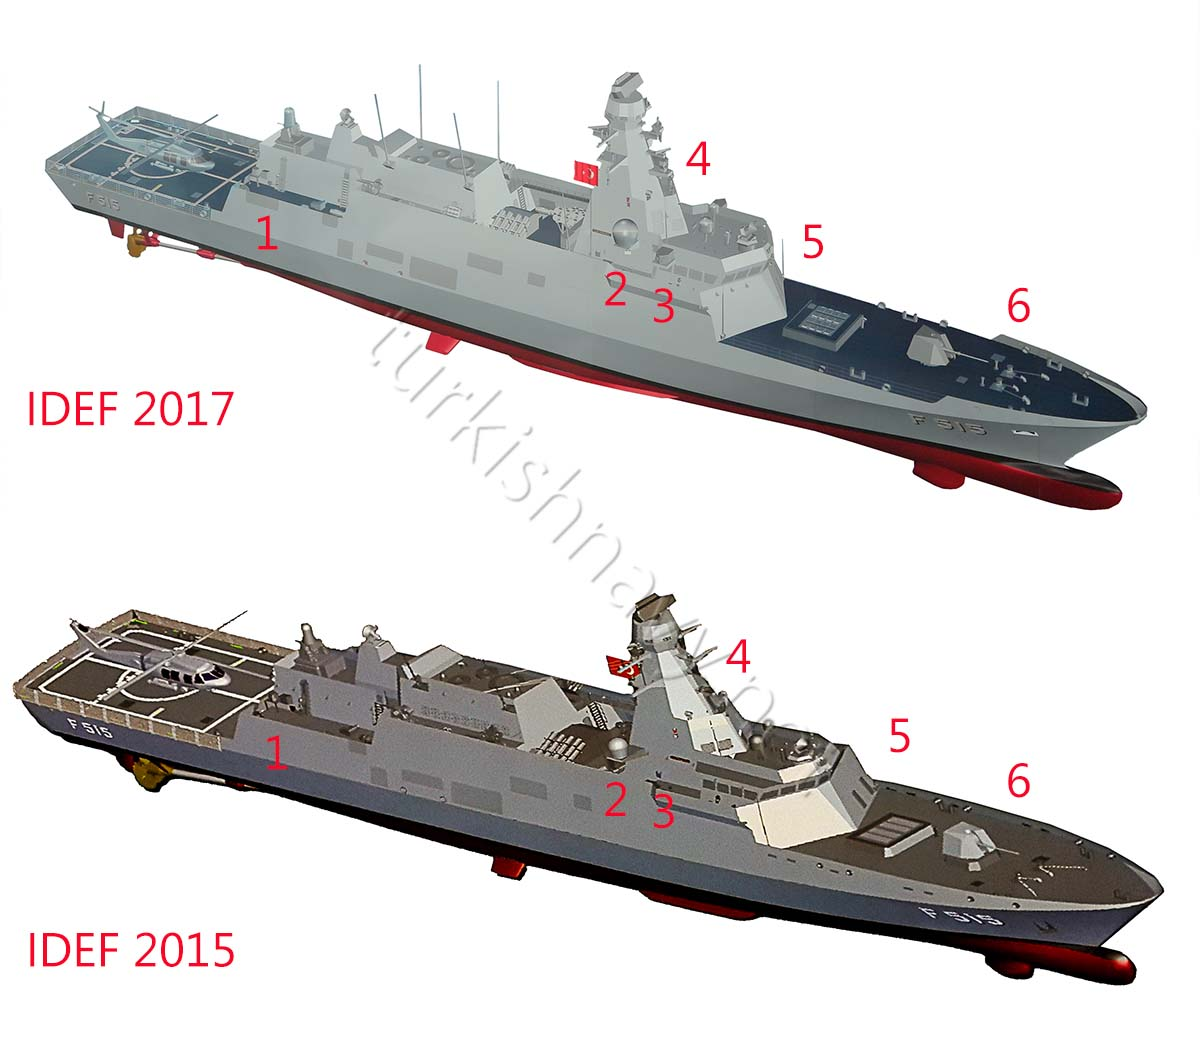 1200x1057 The Evaluation Of Tcg Istanbul's Design